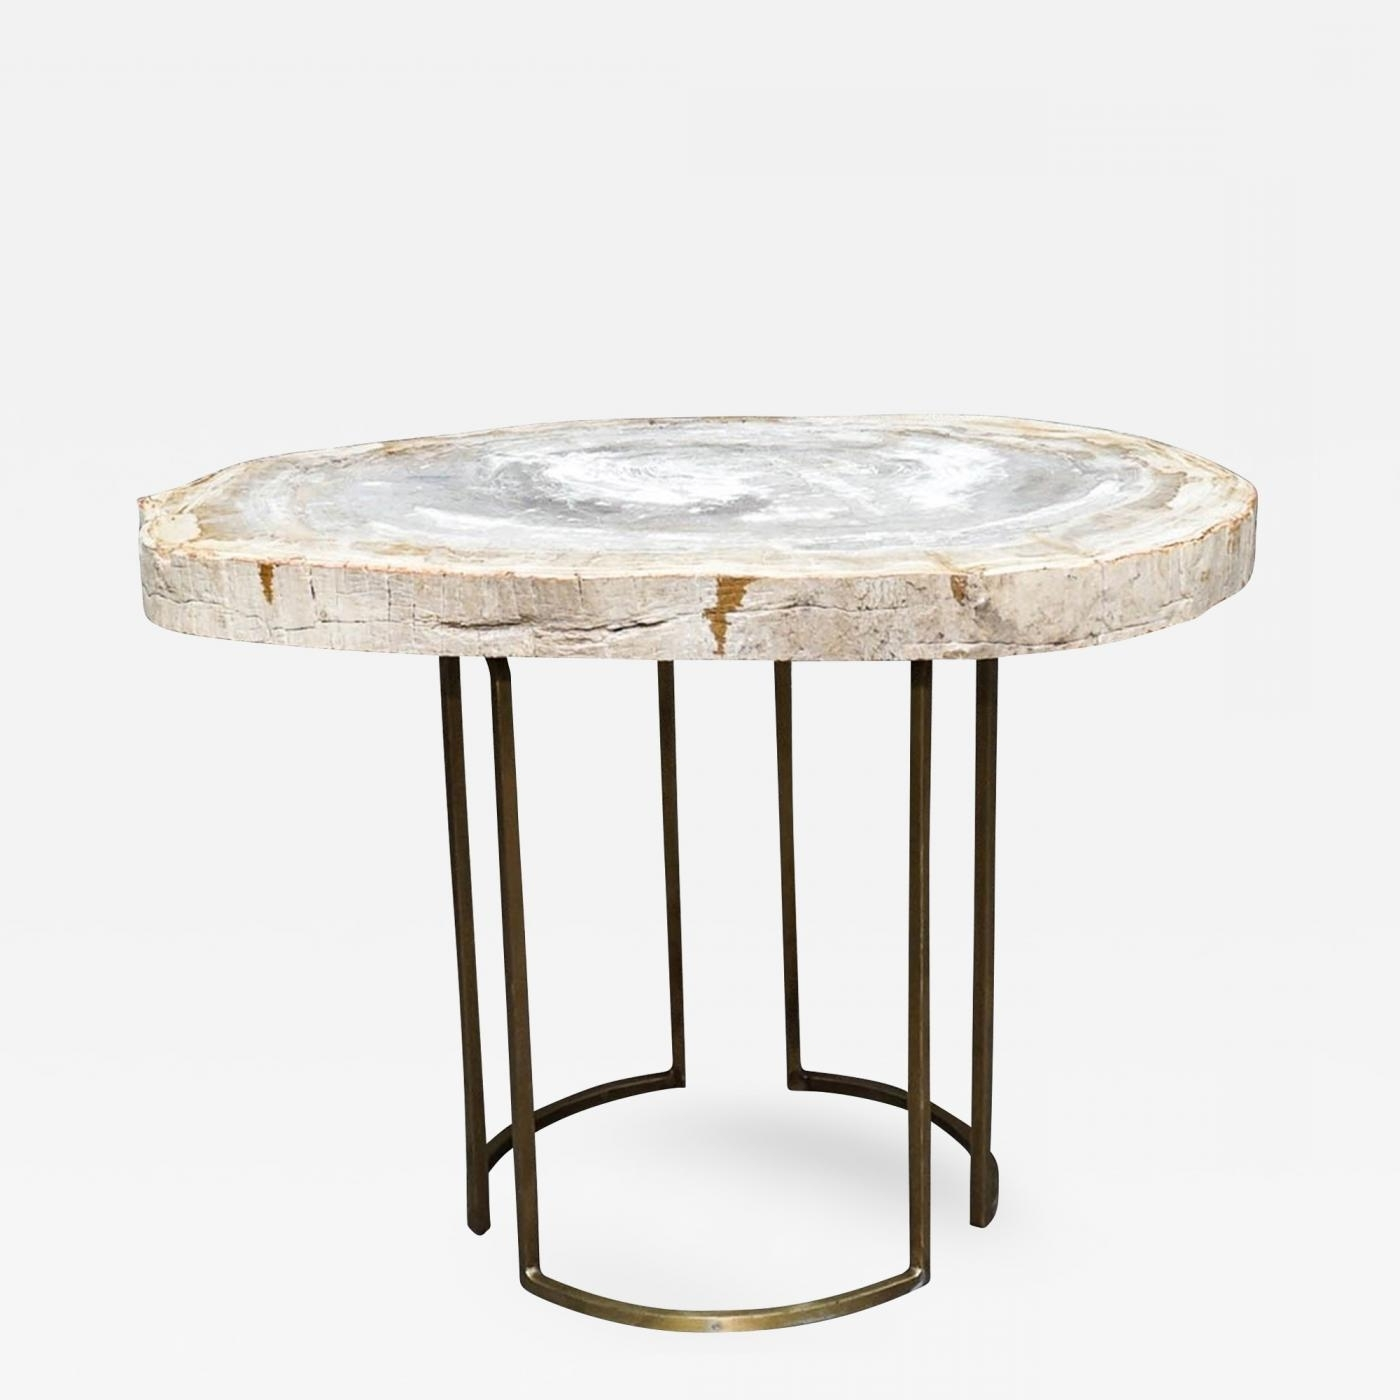 Custom Petrified Wood Slab Accent Table With Brass Base Inside Latest Slab Large Marble Coffee Tables With Brass Base (View 4 of 20)